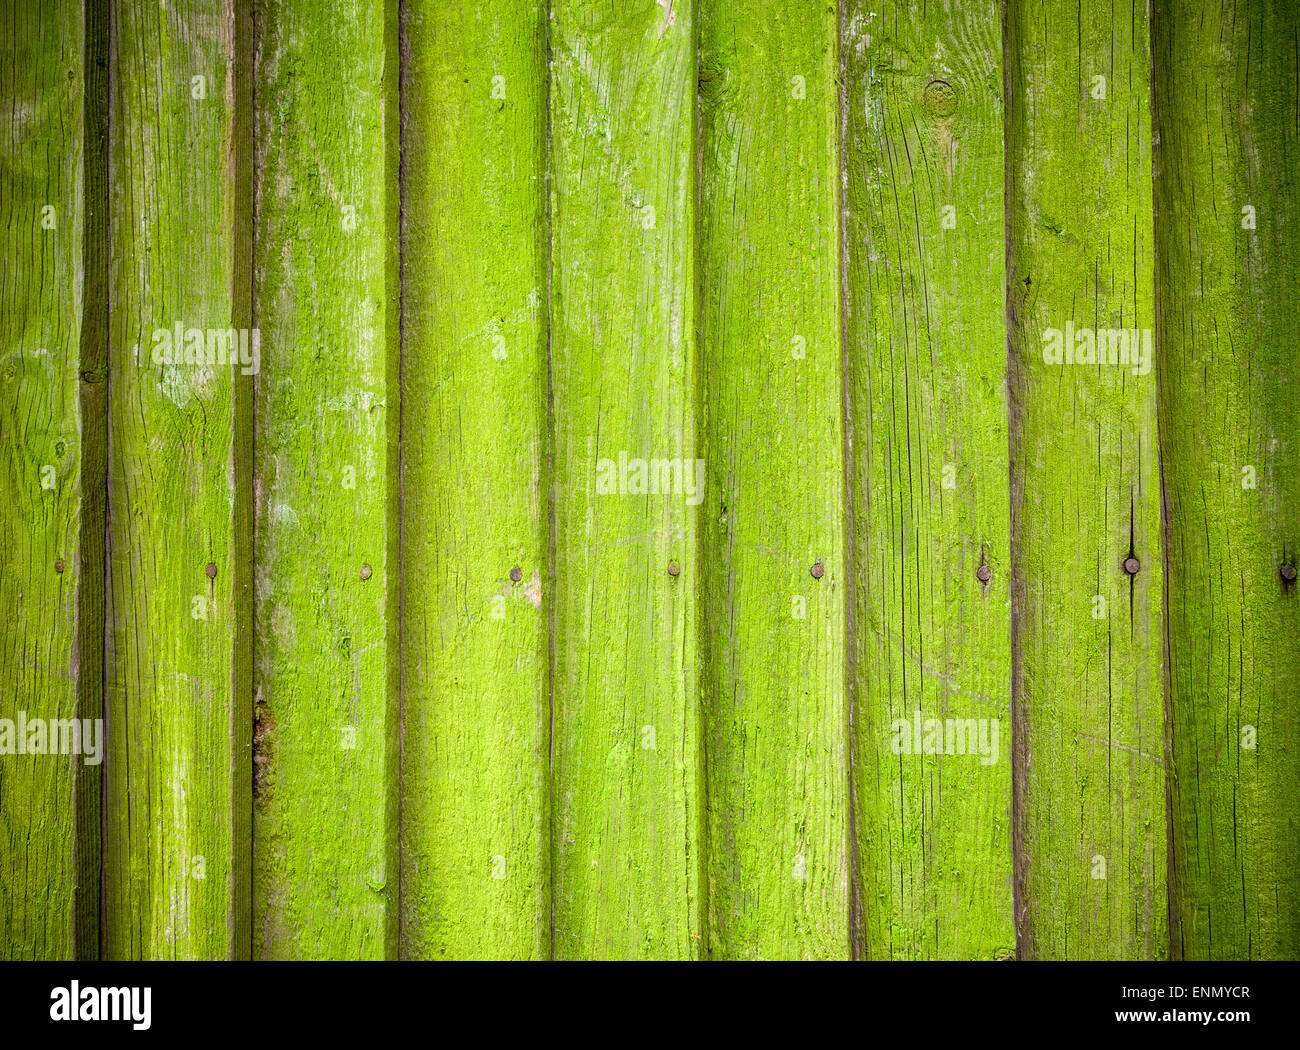 Closeup on a mossy wooden fence - Stock Image